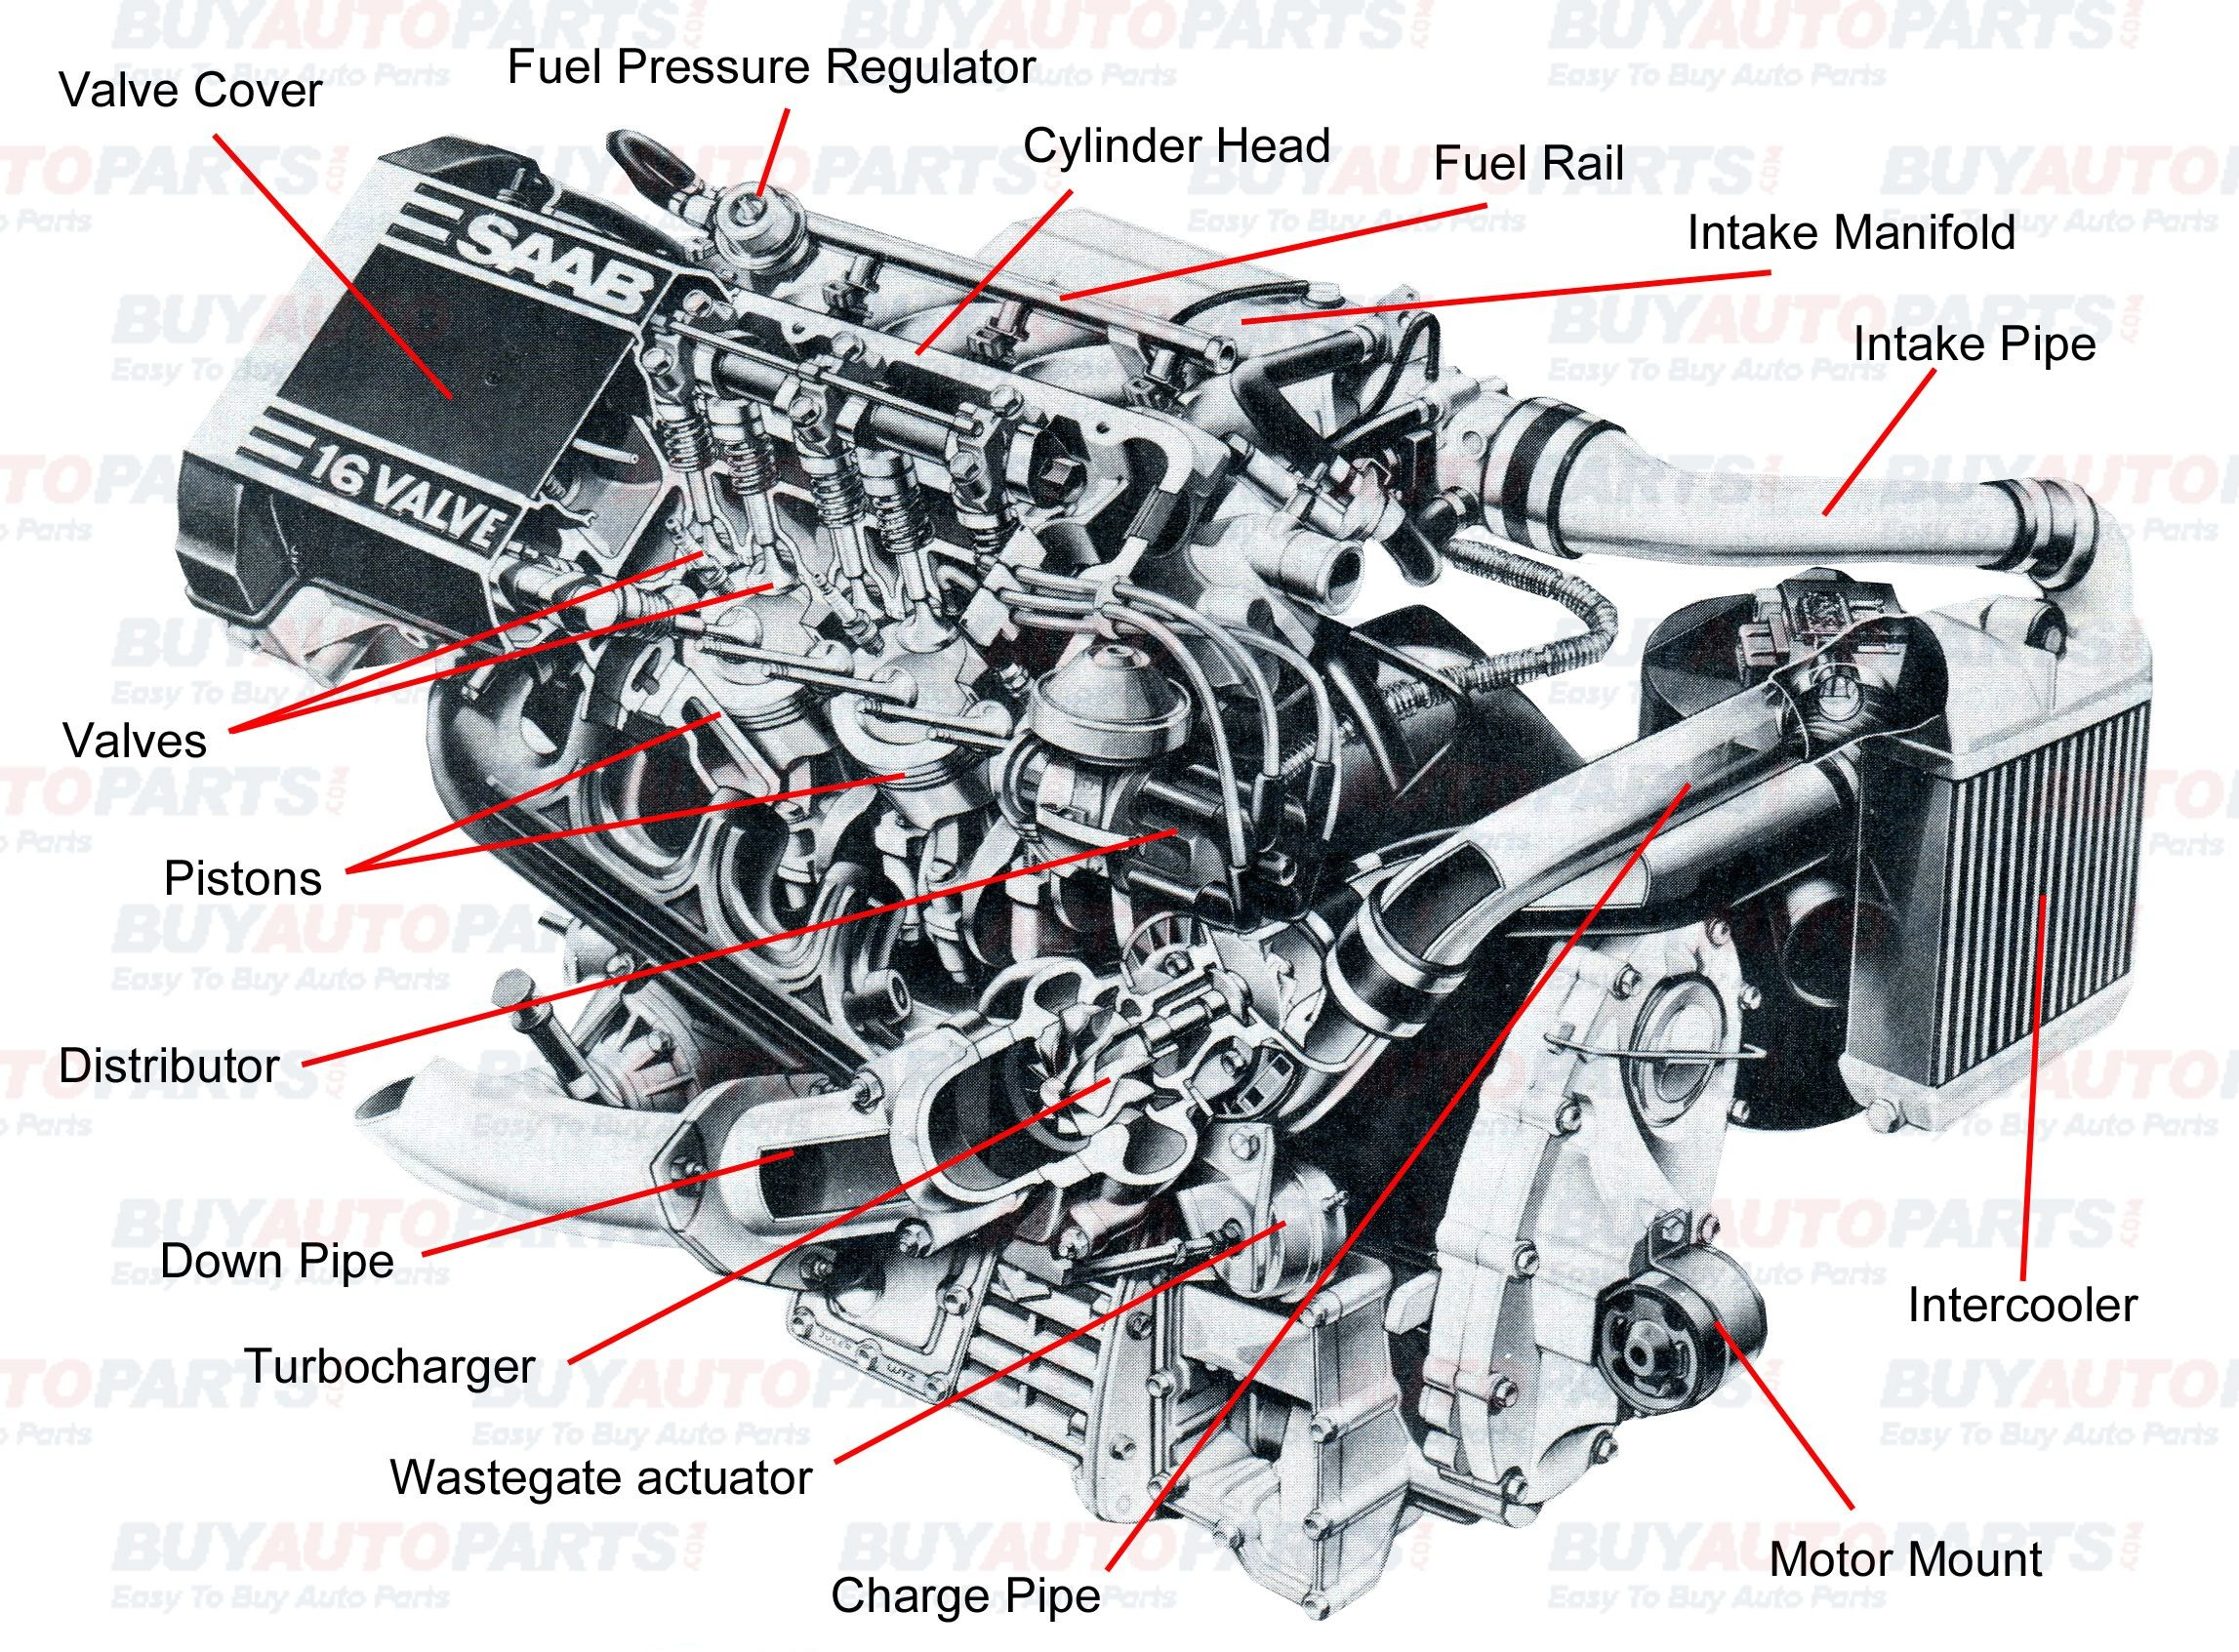 Toyota Engine Parts Diagram Pin by Jimmiejanet Testellamwfz On What Does An Engine with Turbo Of Toyota Engine Parts Diagram